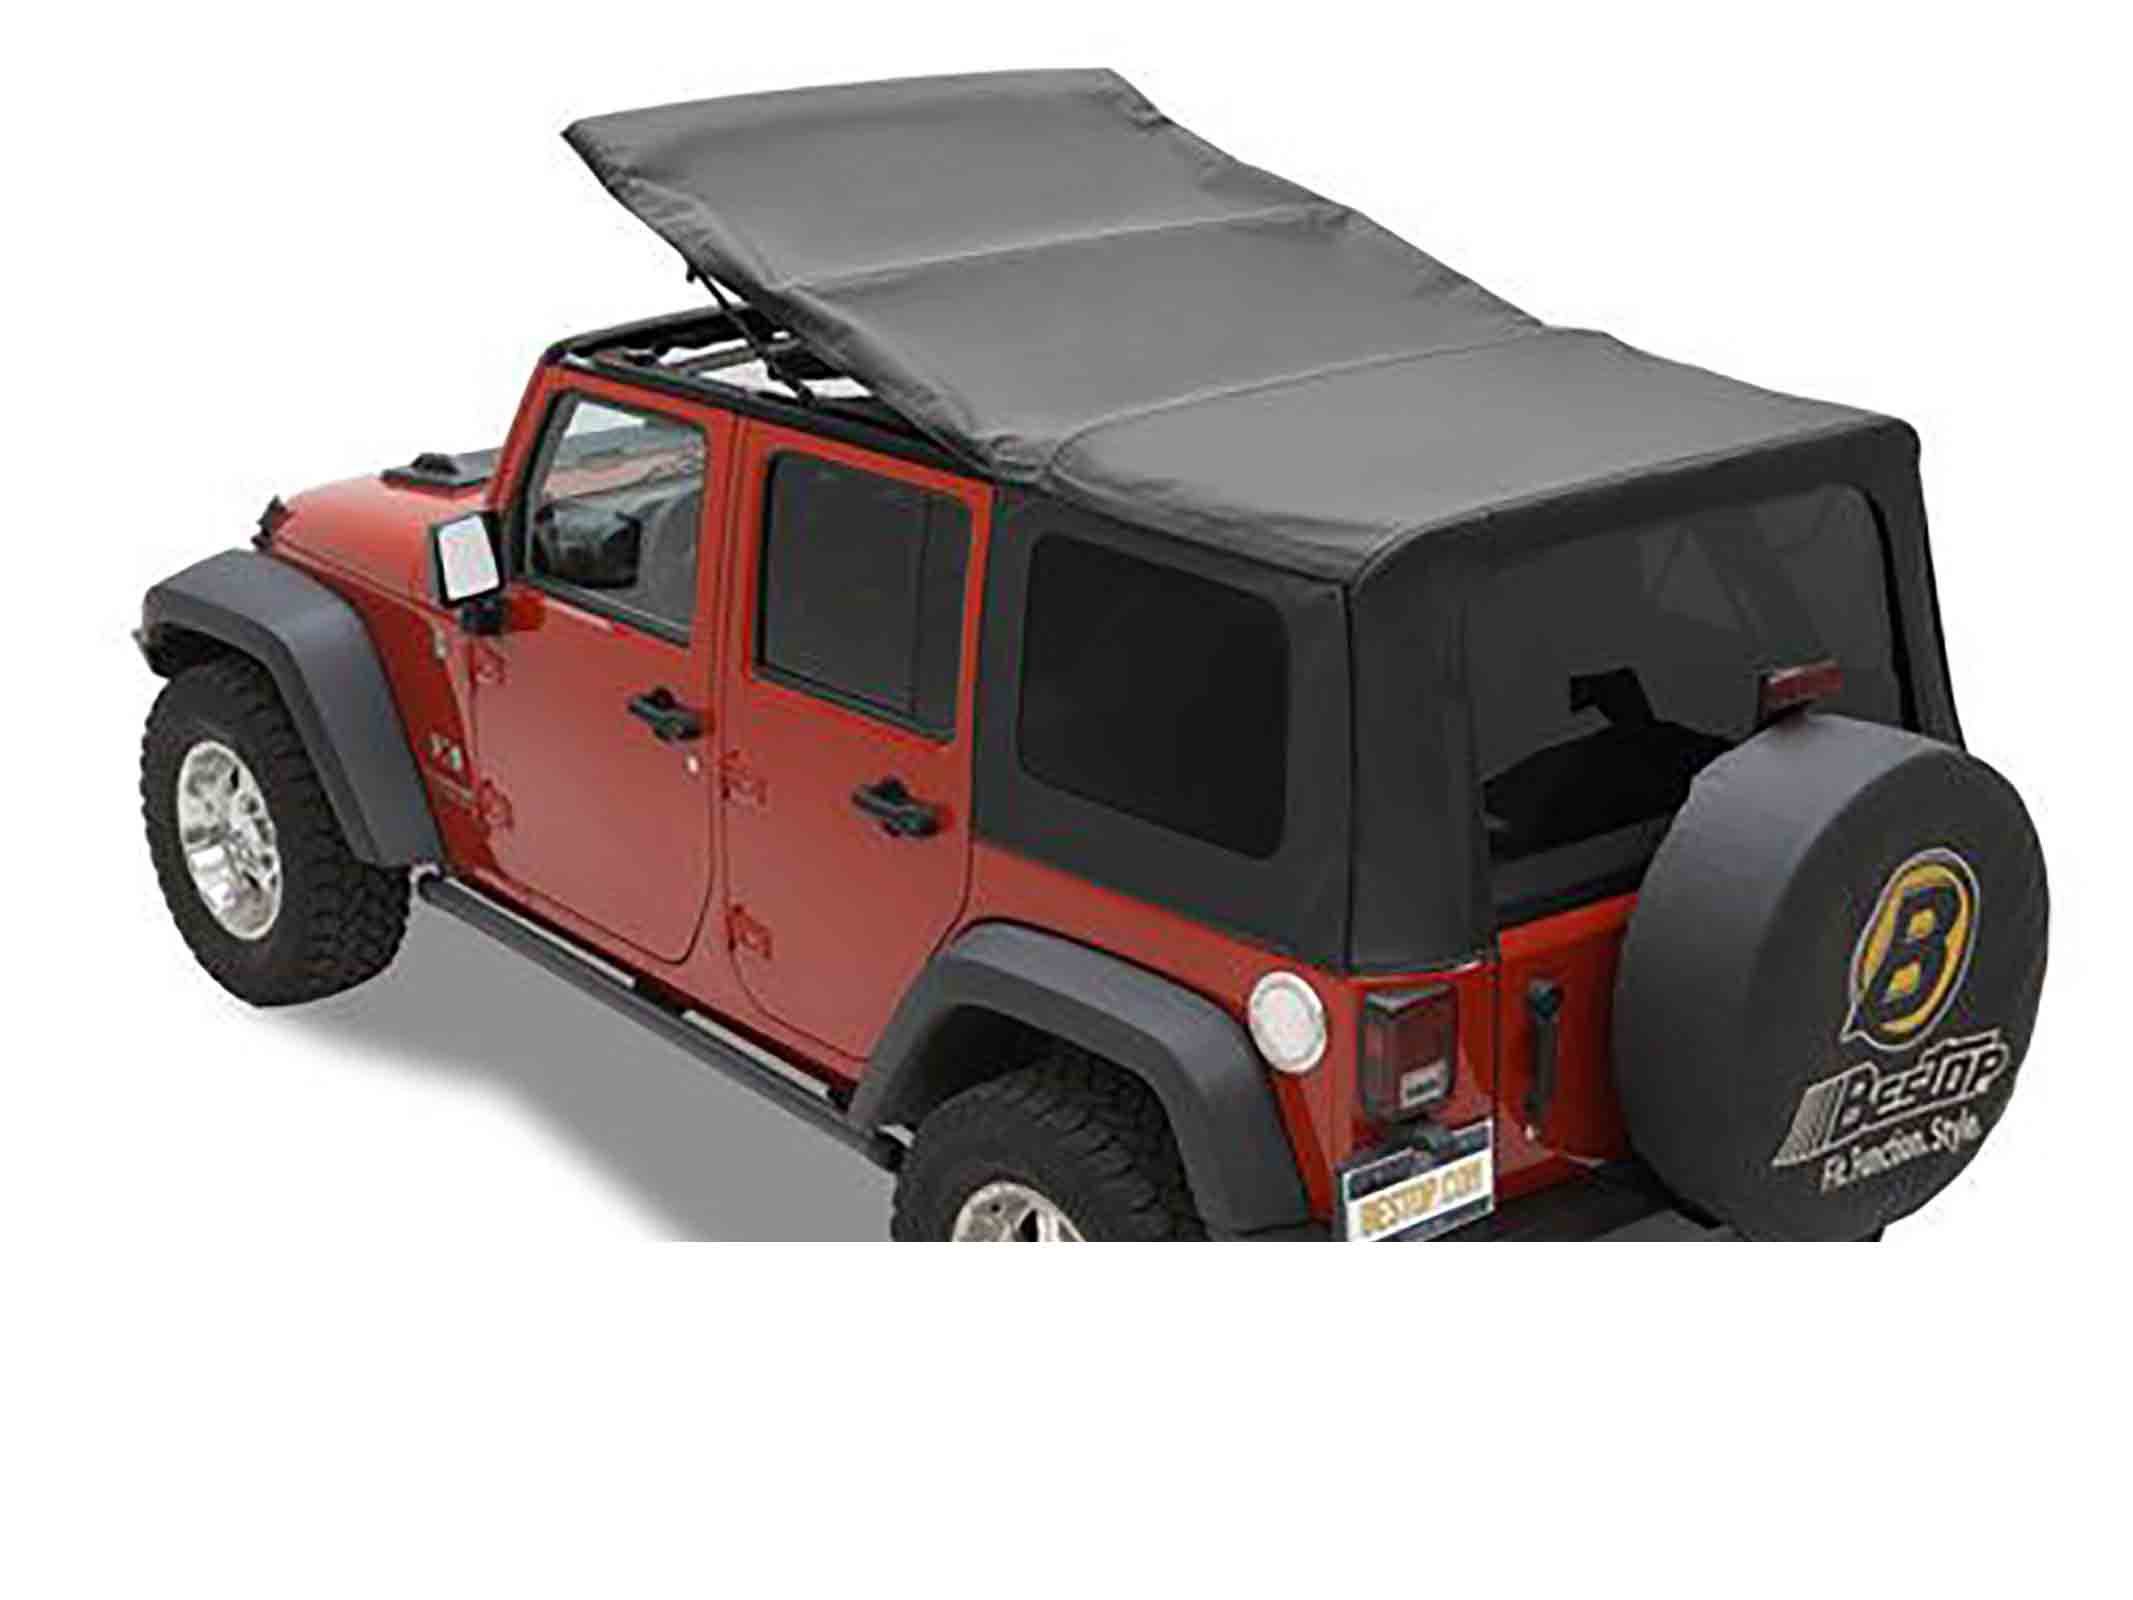 Softtop soft top capottina ricambio wrangler jk unlimited 07 09 4 porte ricambi jeep